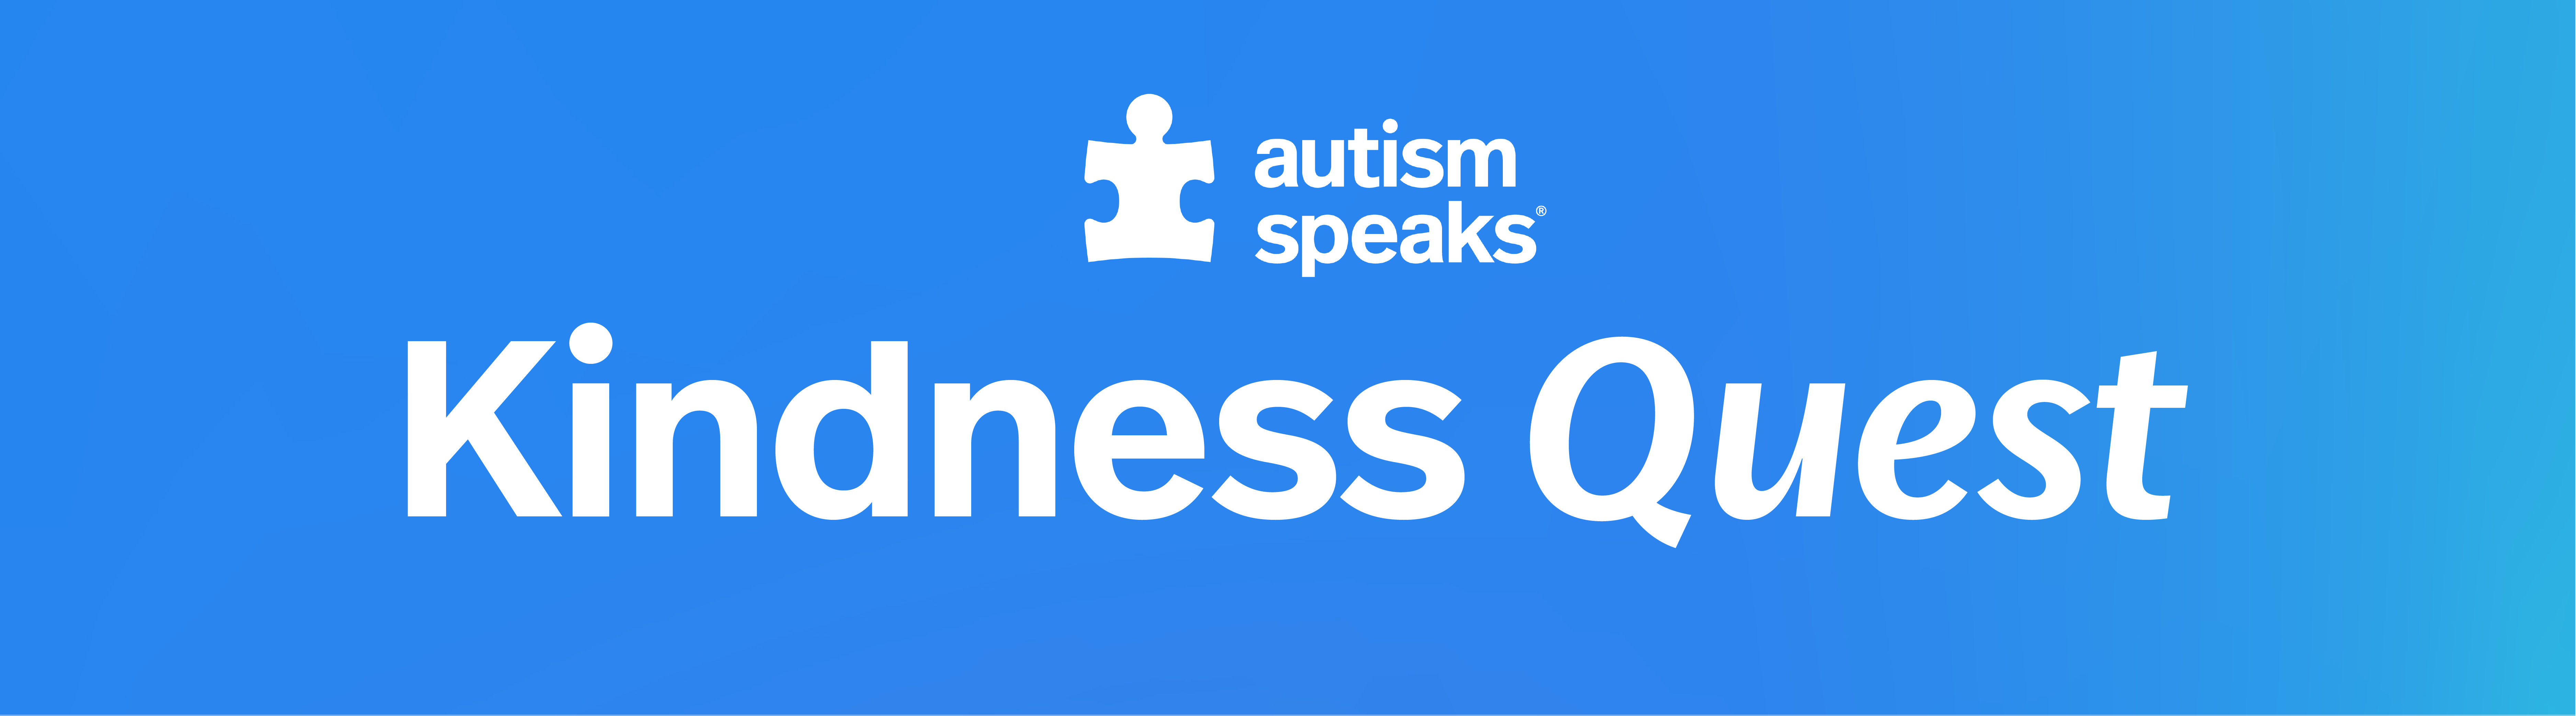 Autism Speaks Kindness Quest